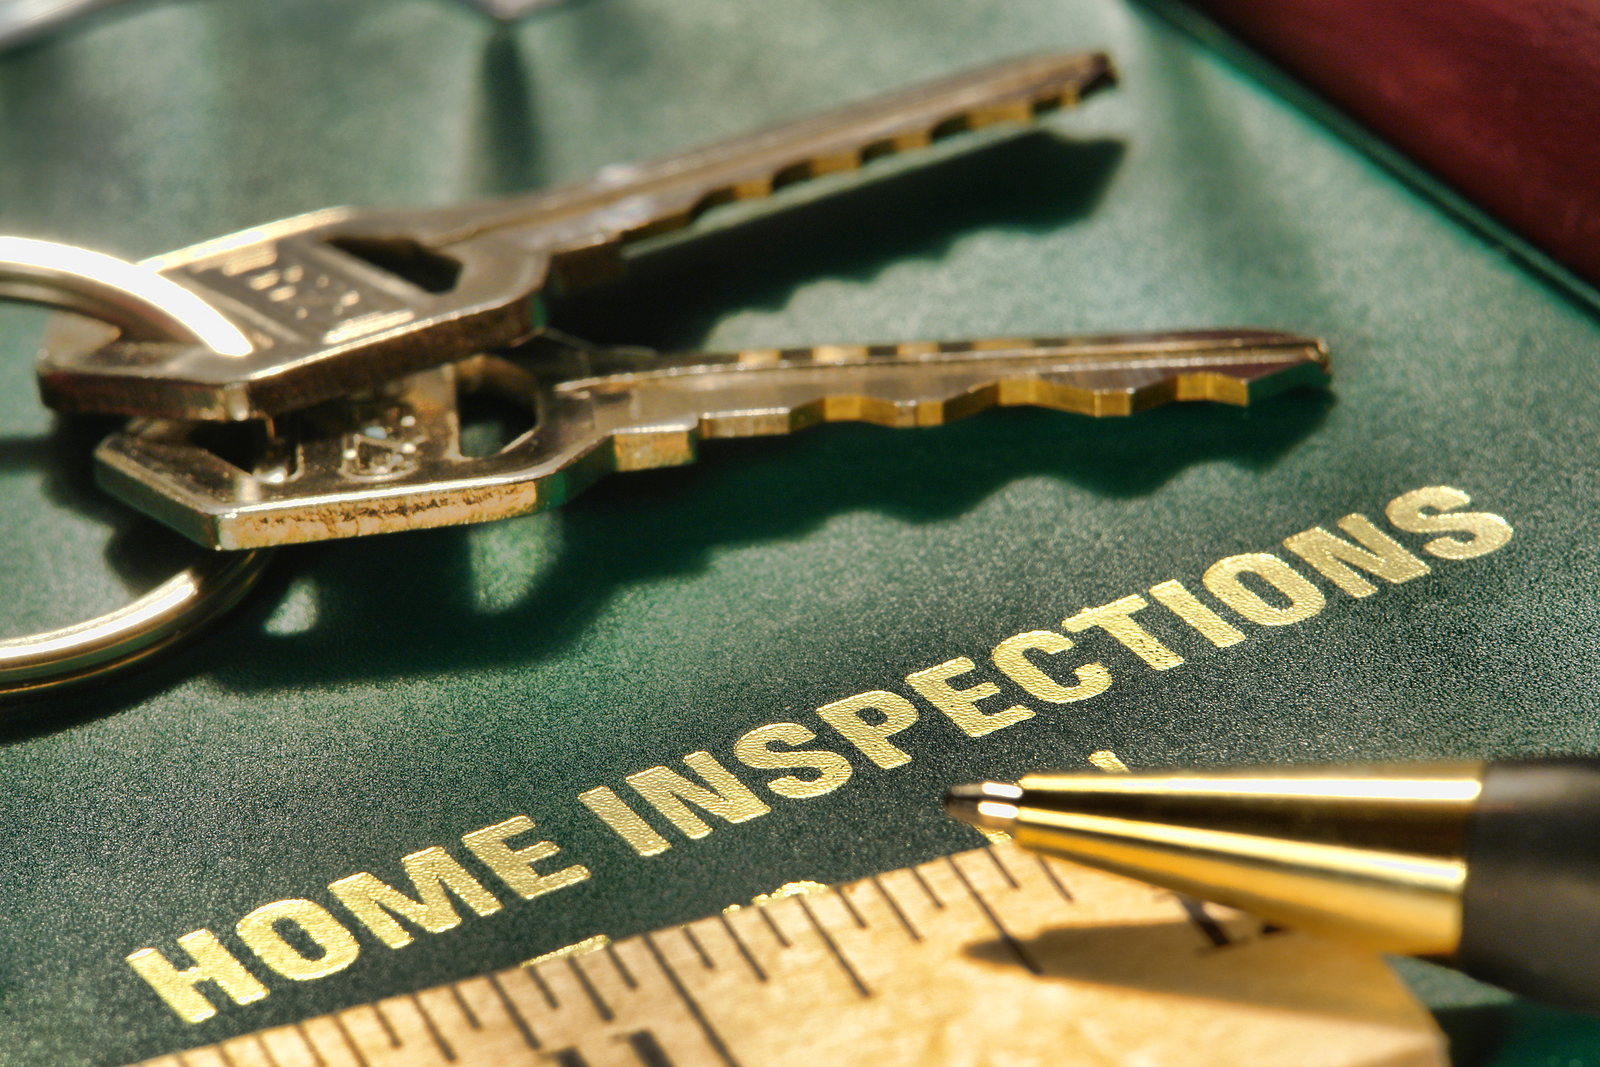 Home Inspections Perth Amboy NJ